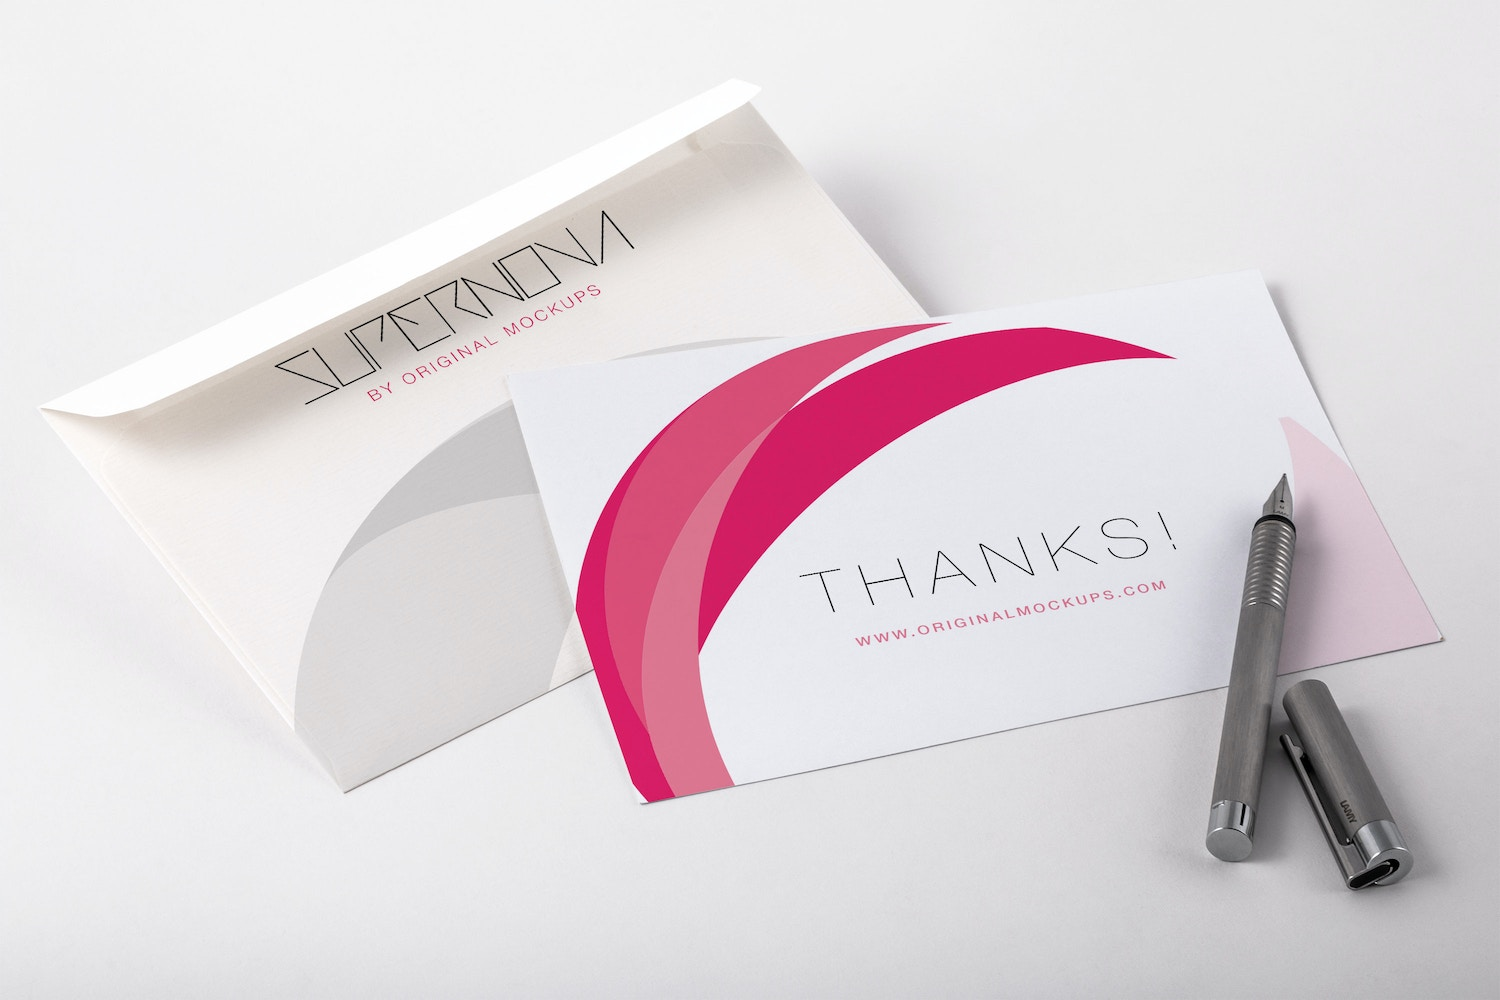 Thank You Card PSD Mockup 01 by Original Mockups on Original Mockups